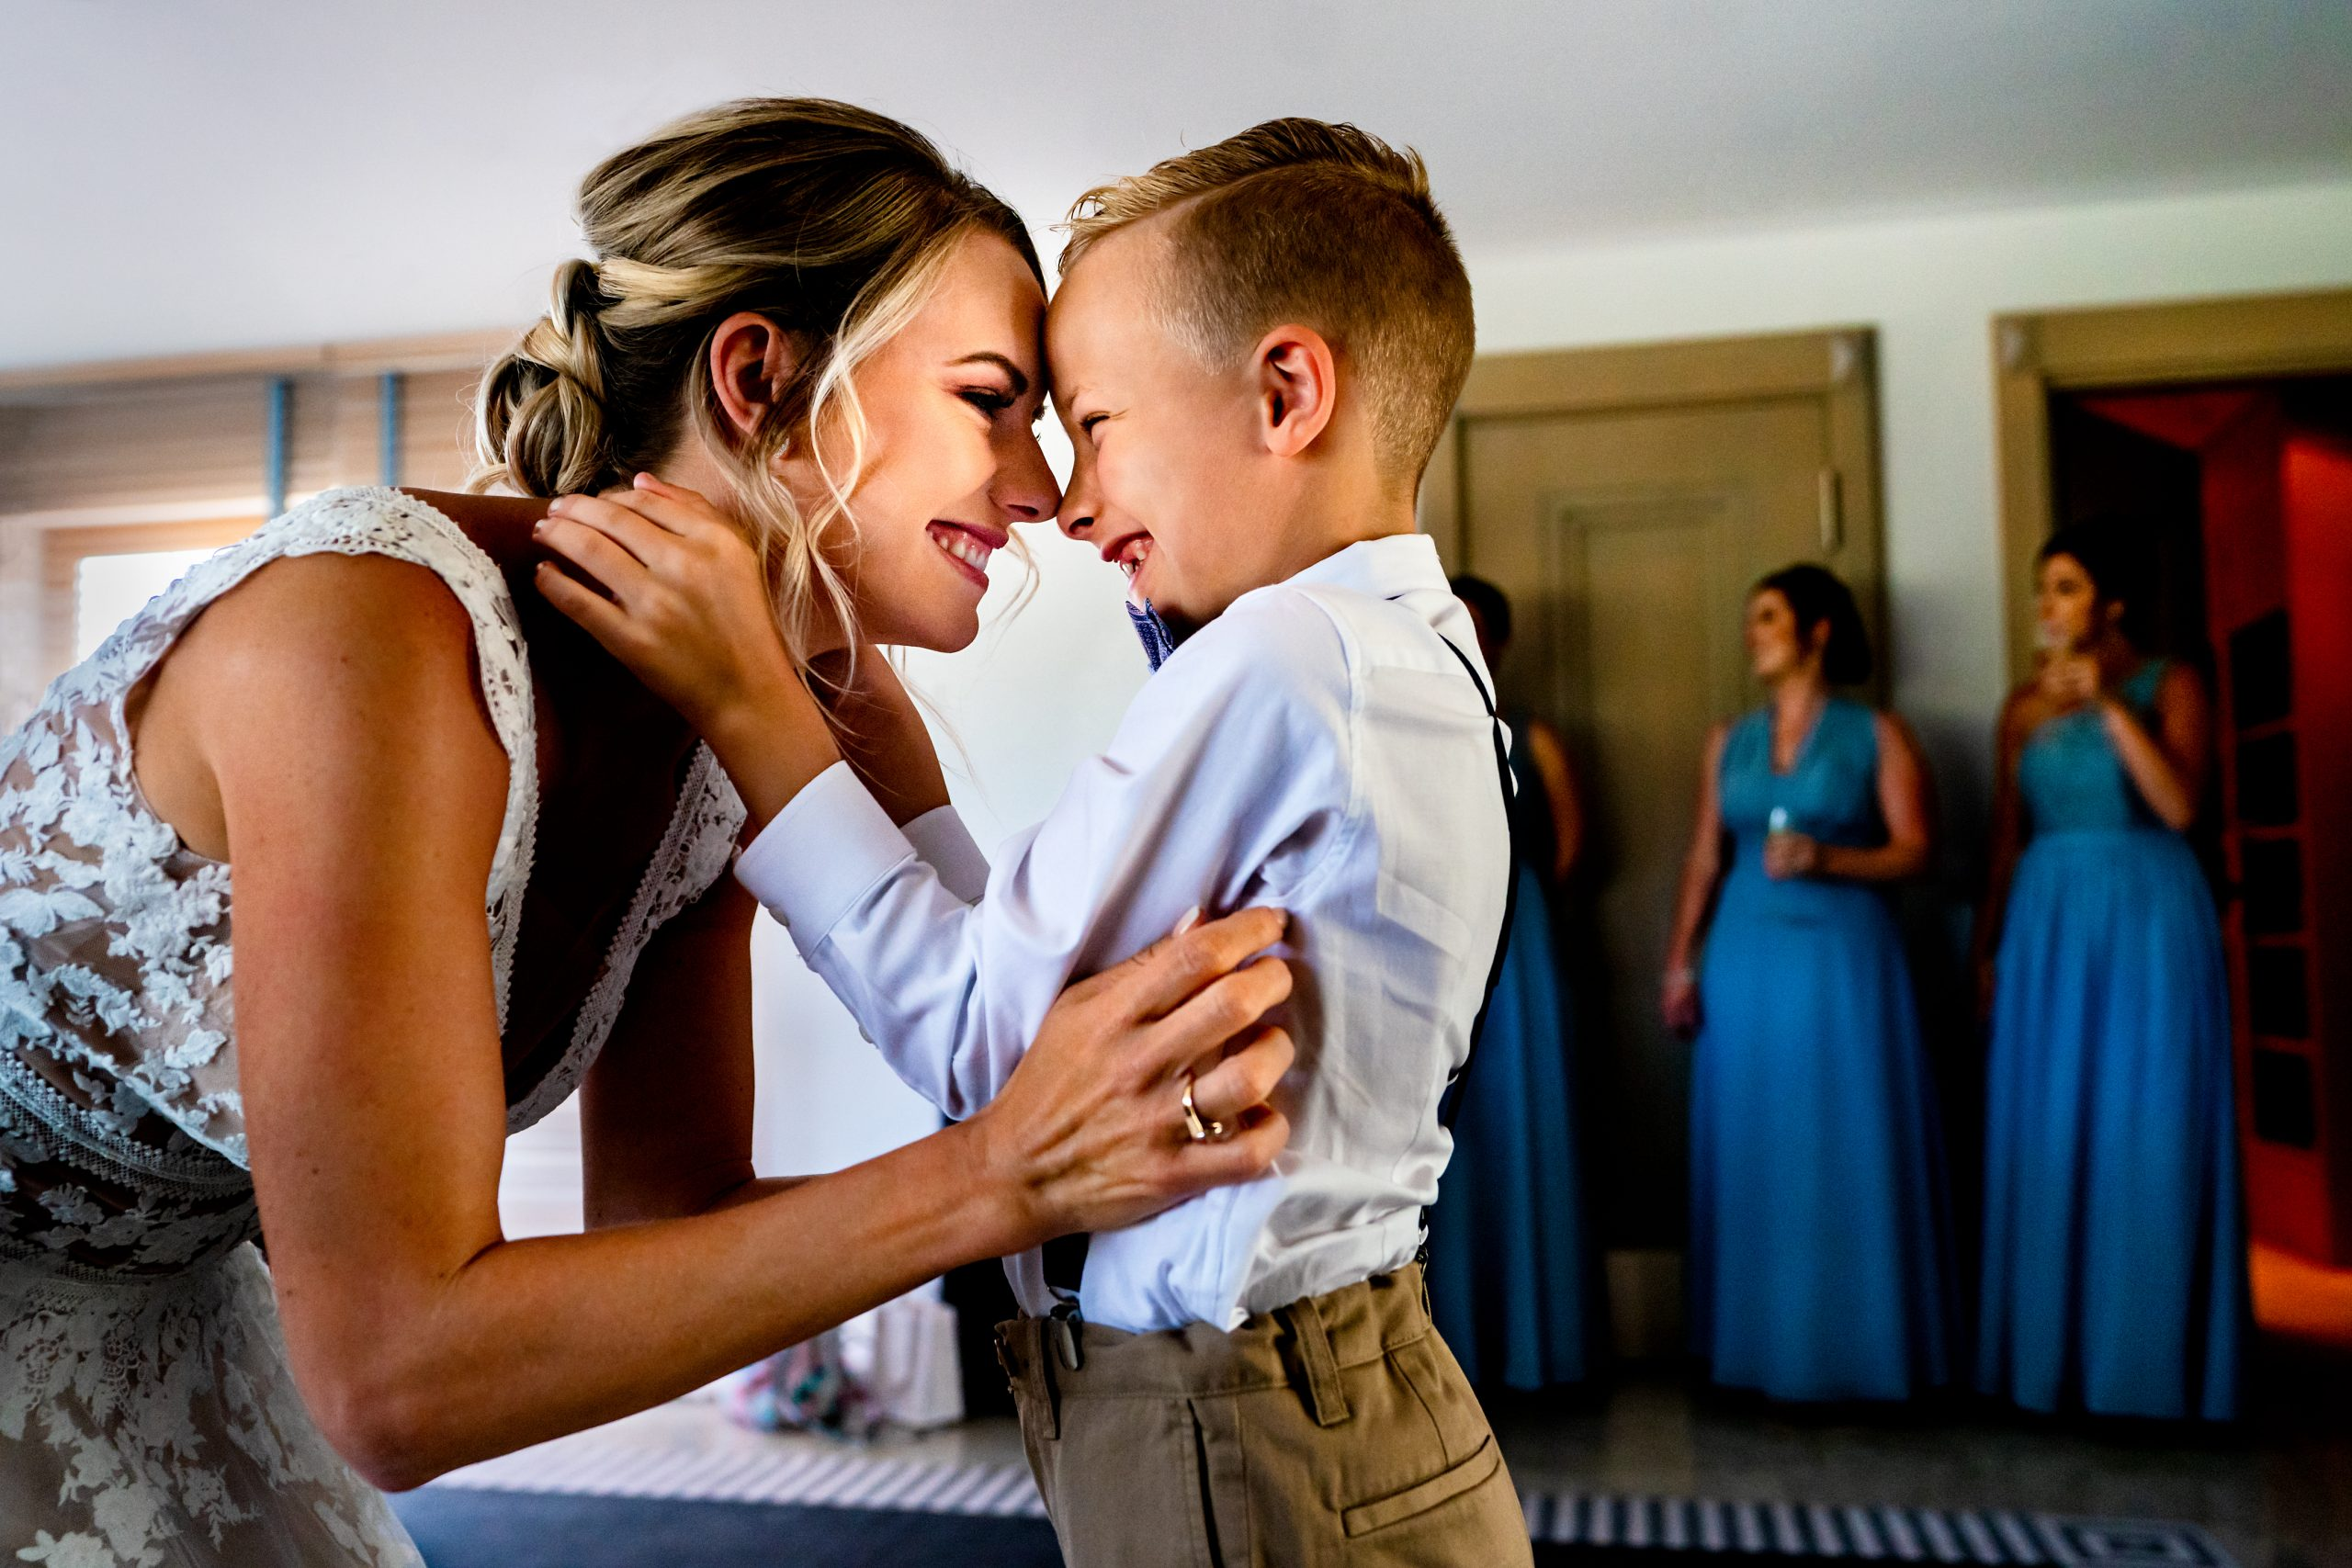 Boy and mother rub noses before the mother's wedding.